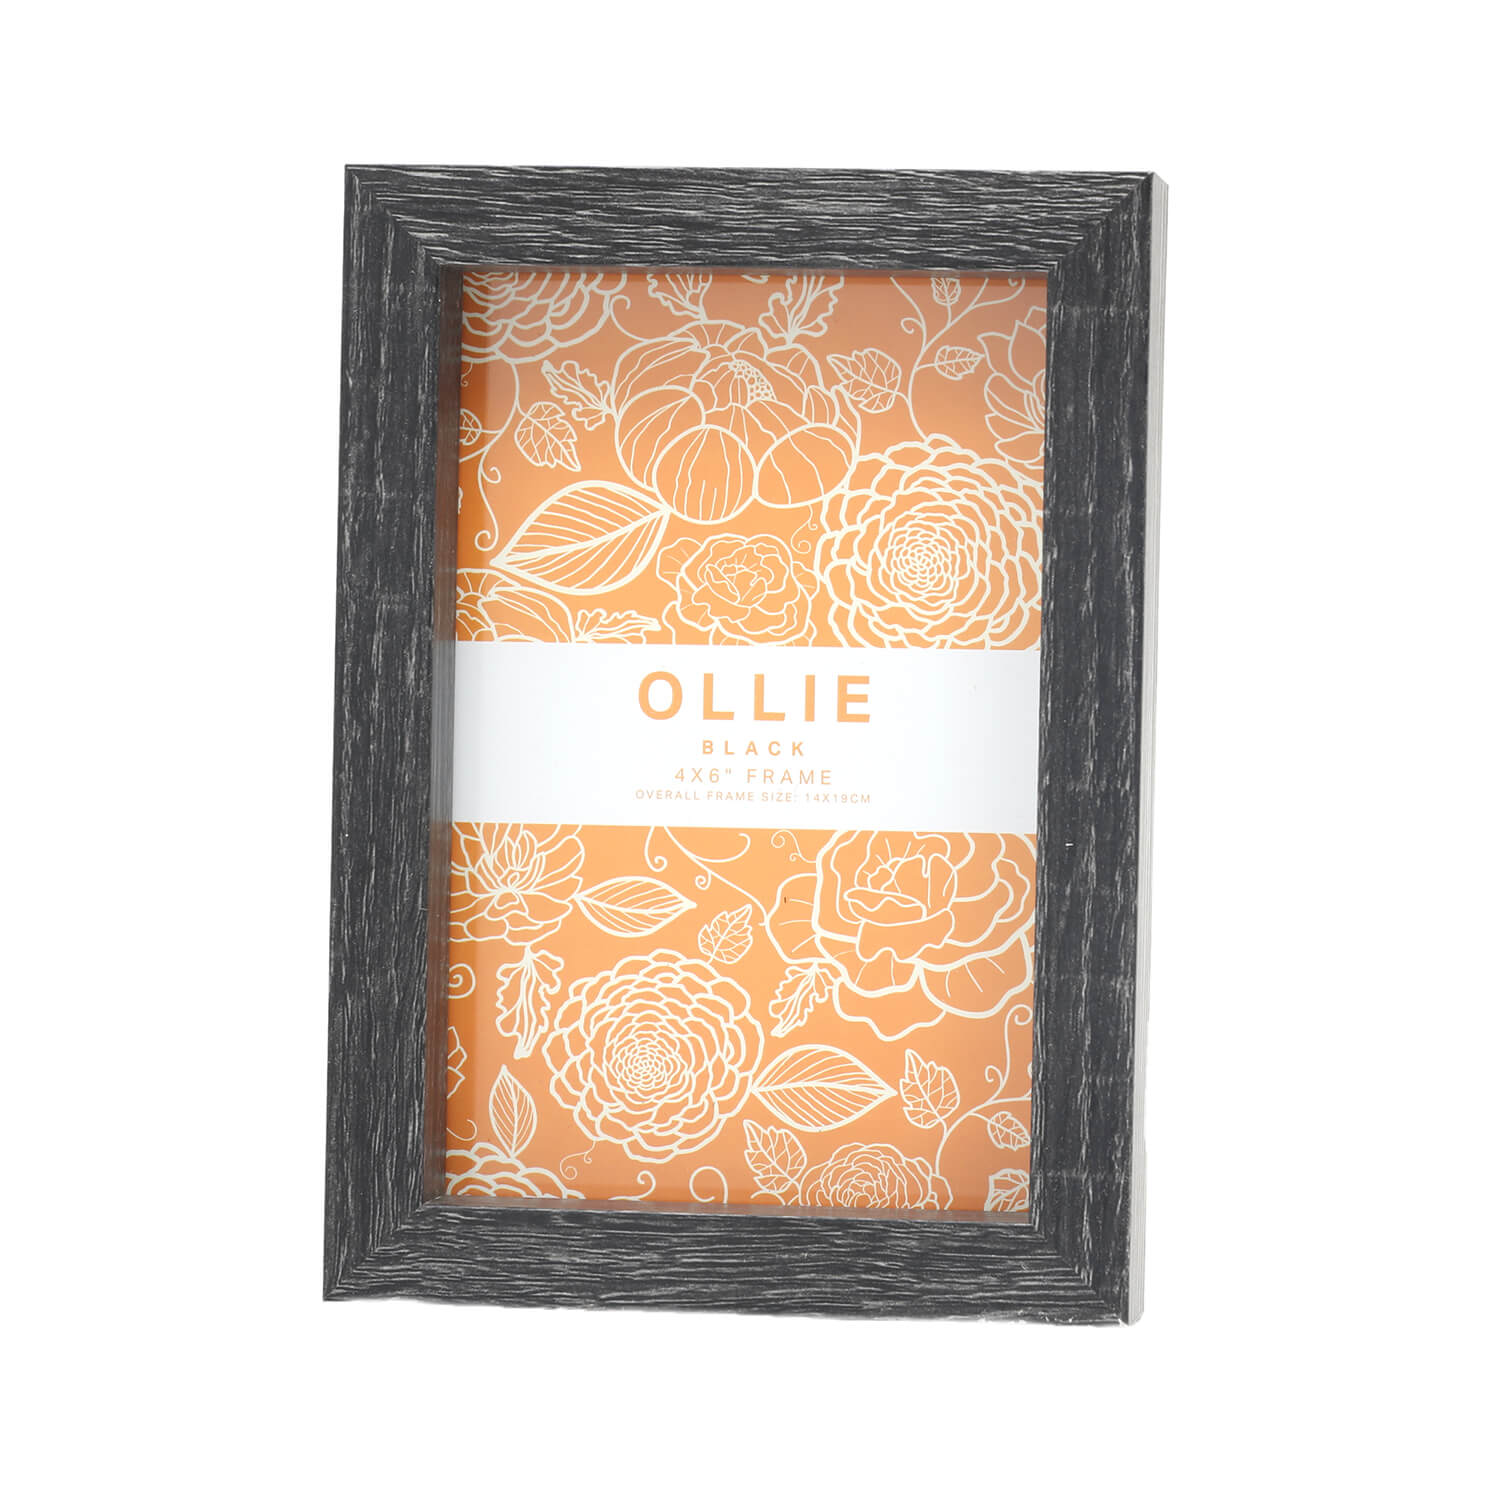 "Ollie Photo Frame 4x6"" - Black"